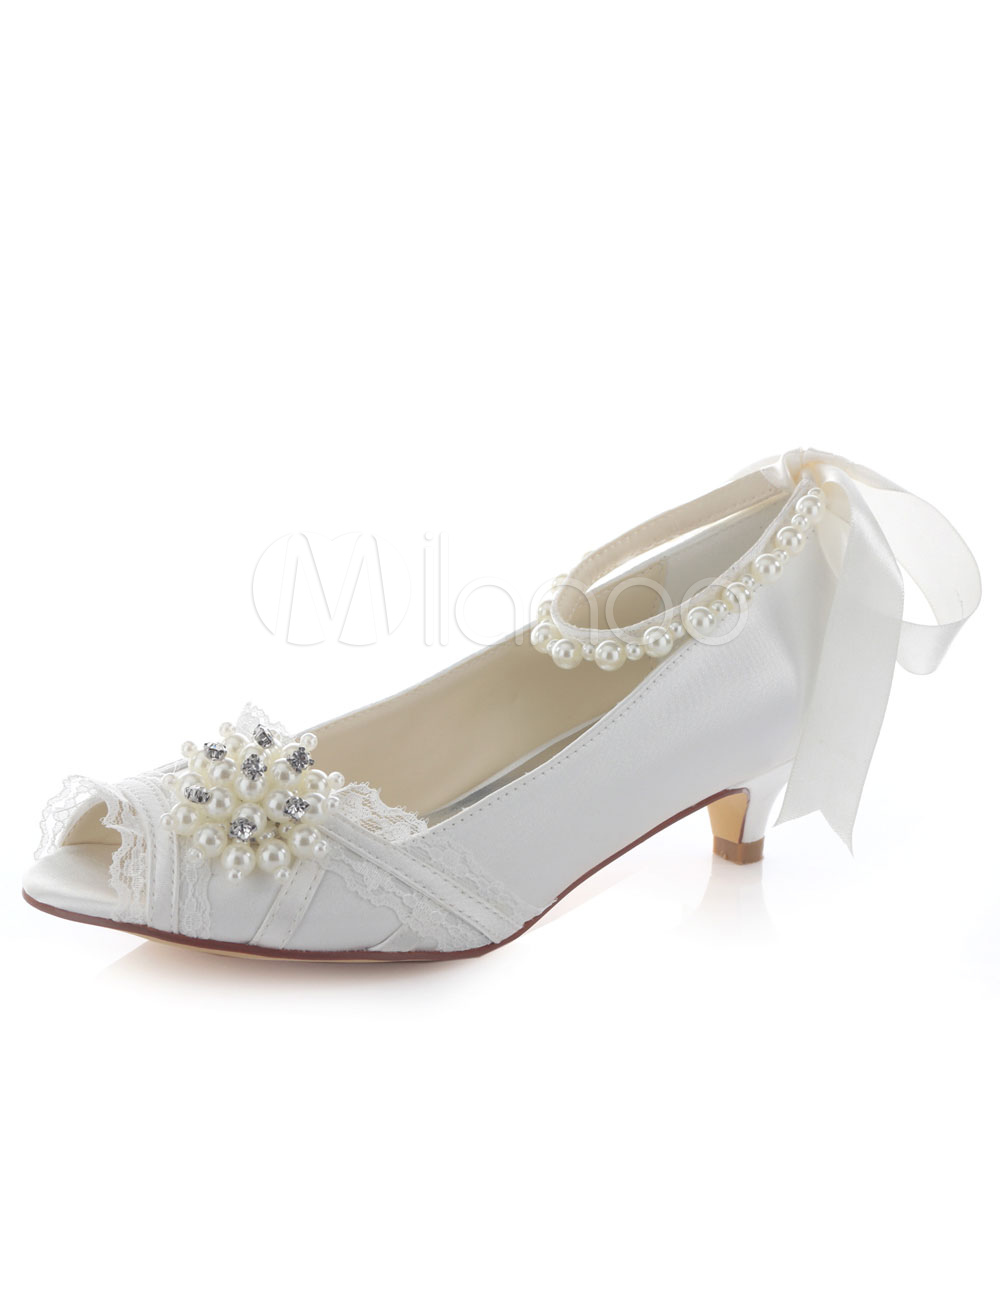 Ivory Wedding Shoes Peep Toe Bow Pearl Slip On Ankle Strap Kitten Heel Bridal Shoes